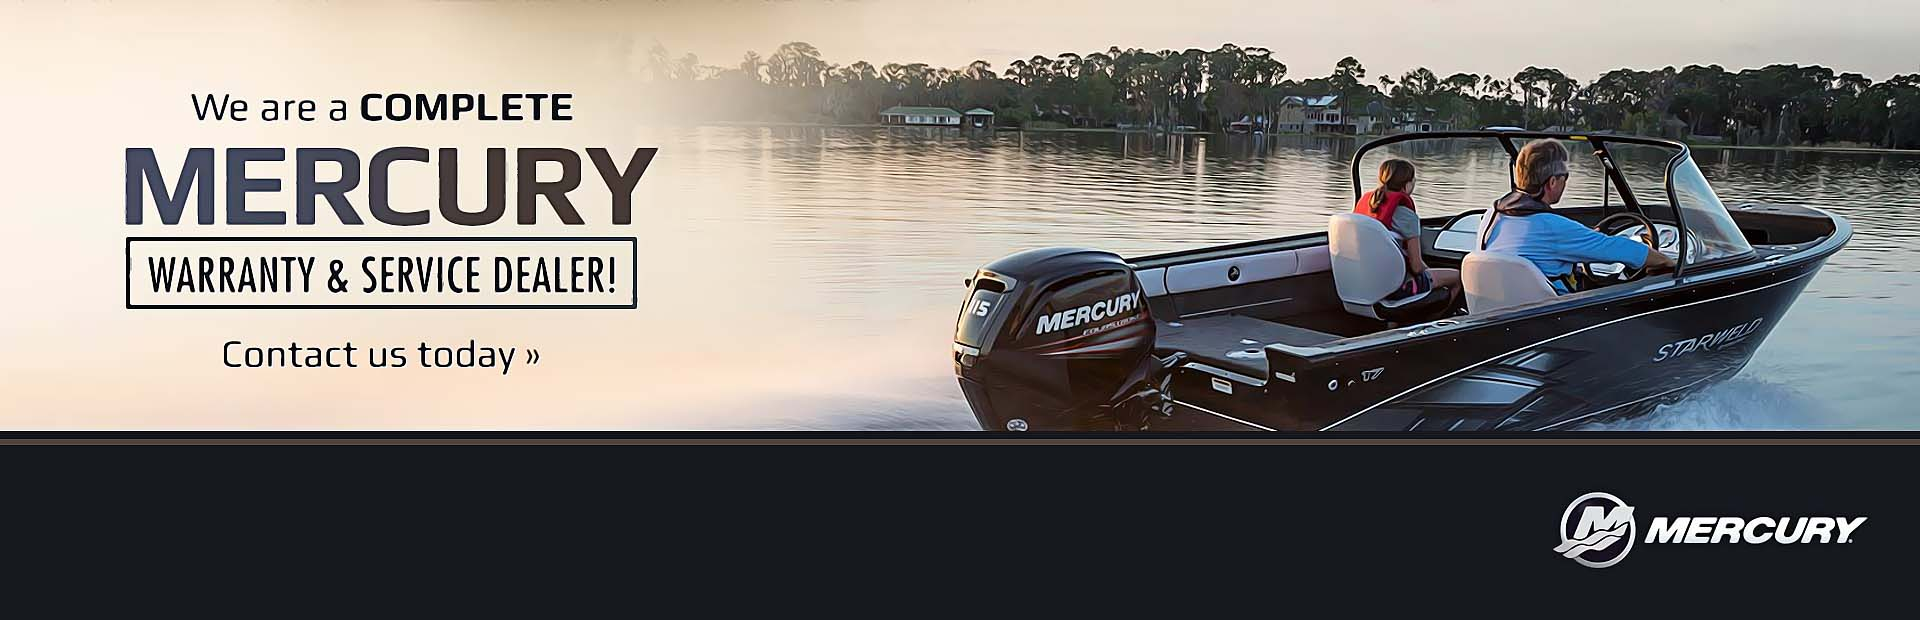 We are a complete Mercury warranty and service dealer! Contact us today for details.